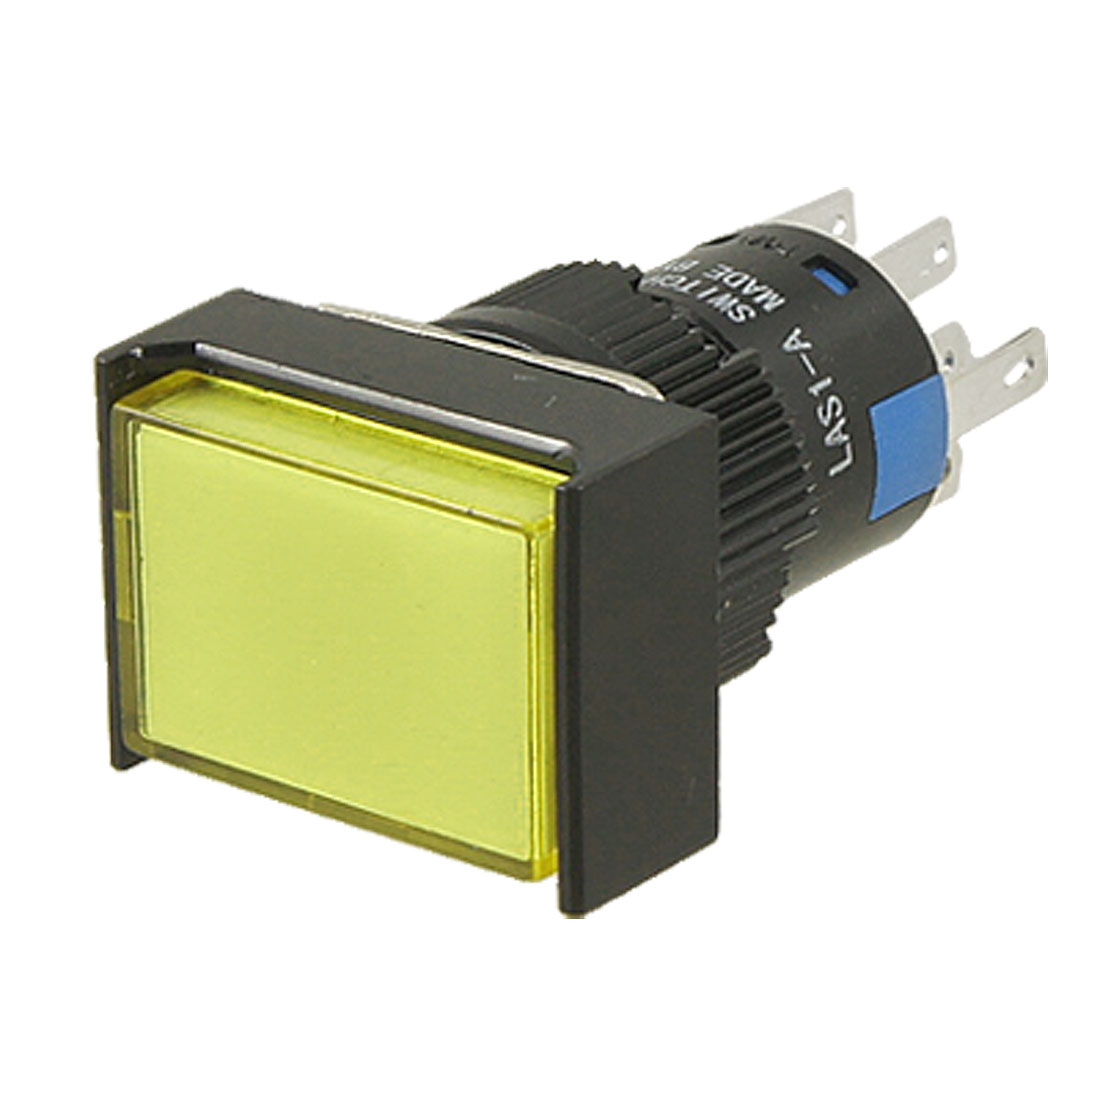 AC 220V Rectangle Yellow Cap Lamp Momentary Contact Push Button Switch